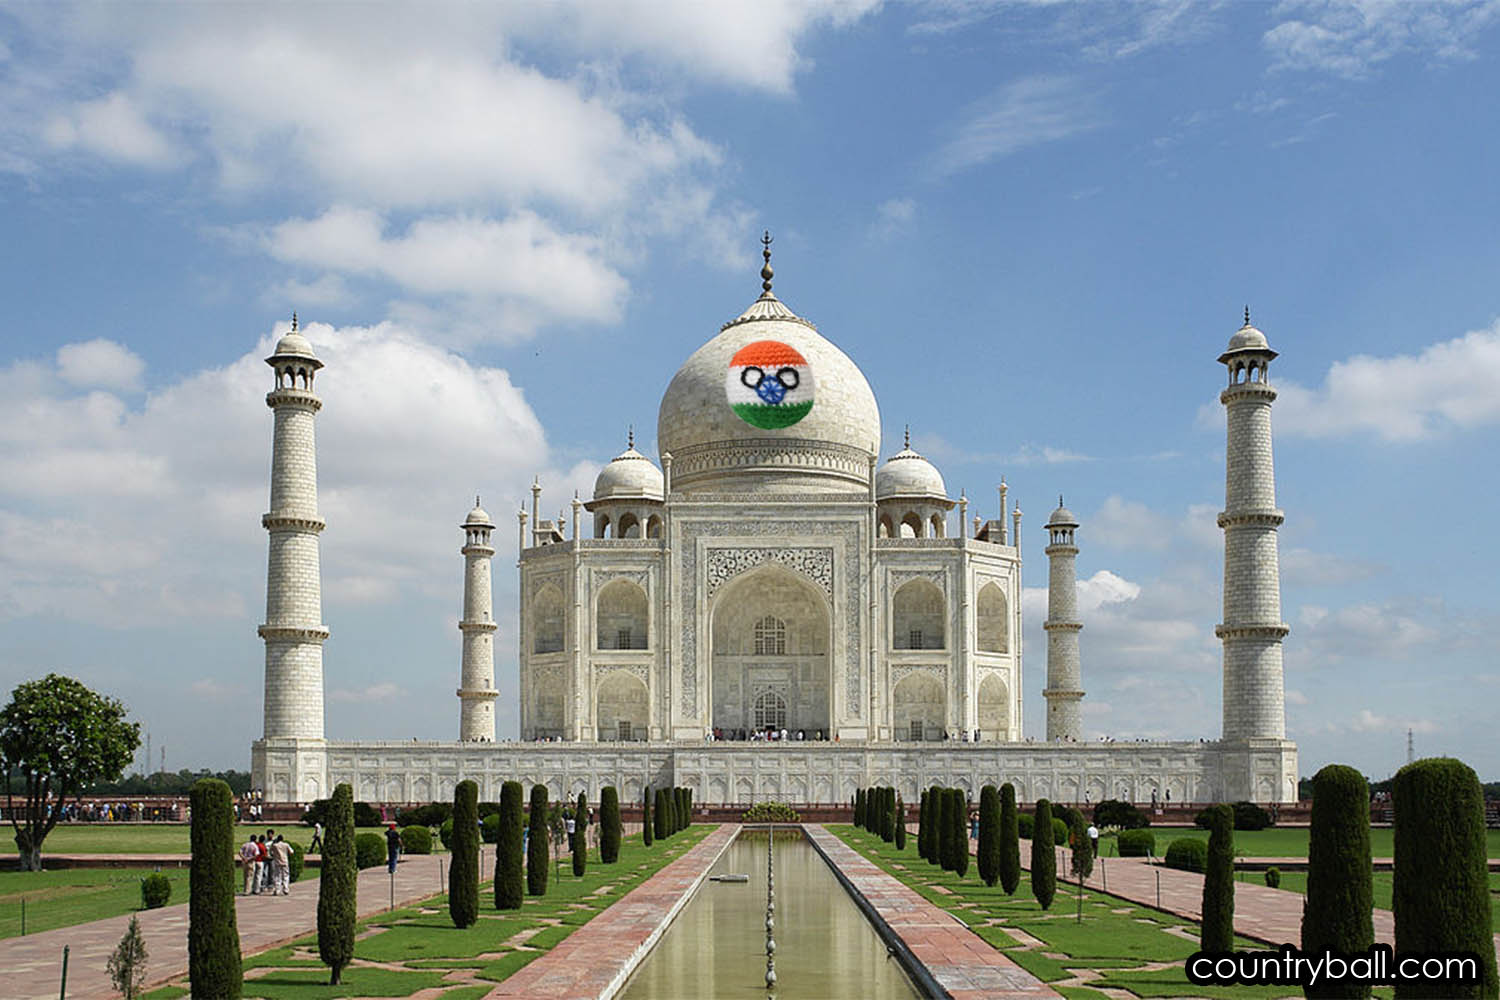 Indiaball, the symbol of Taj Mahal